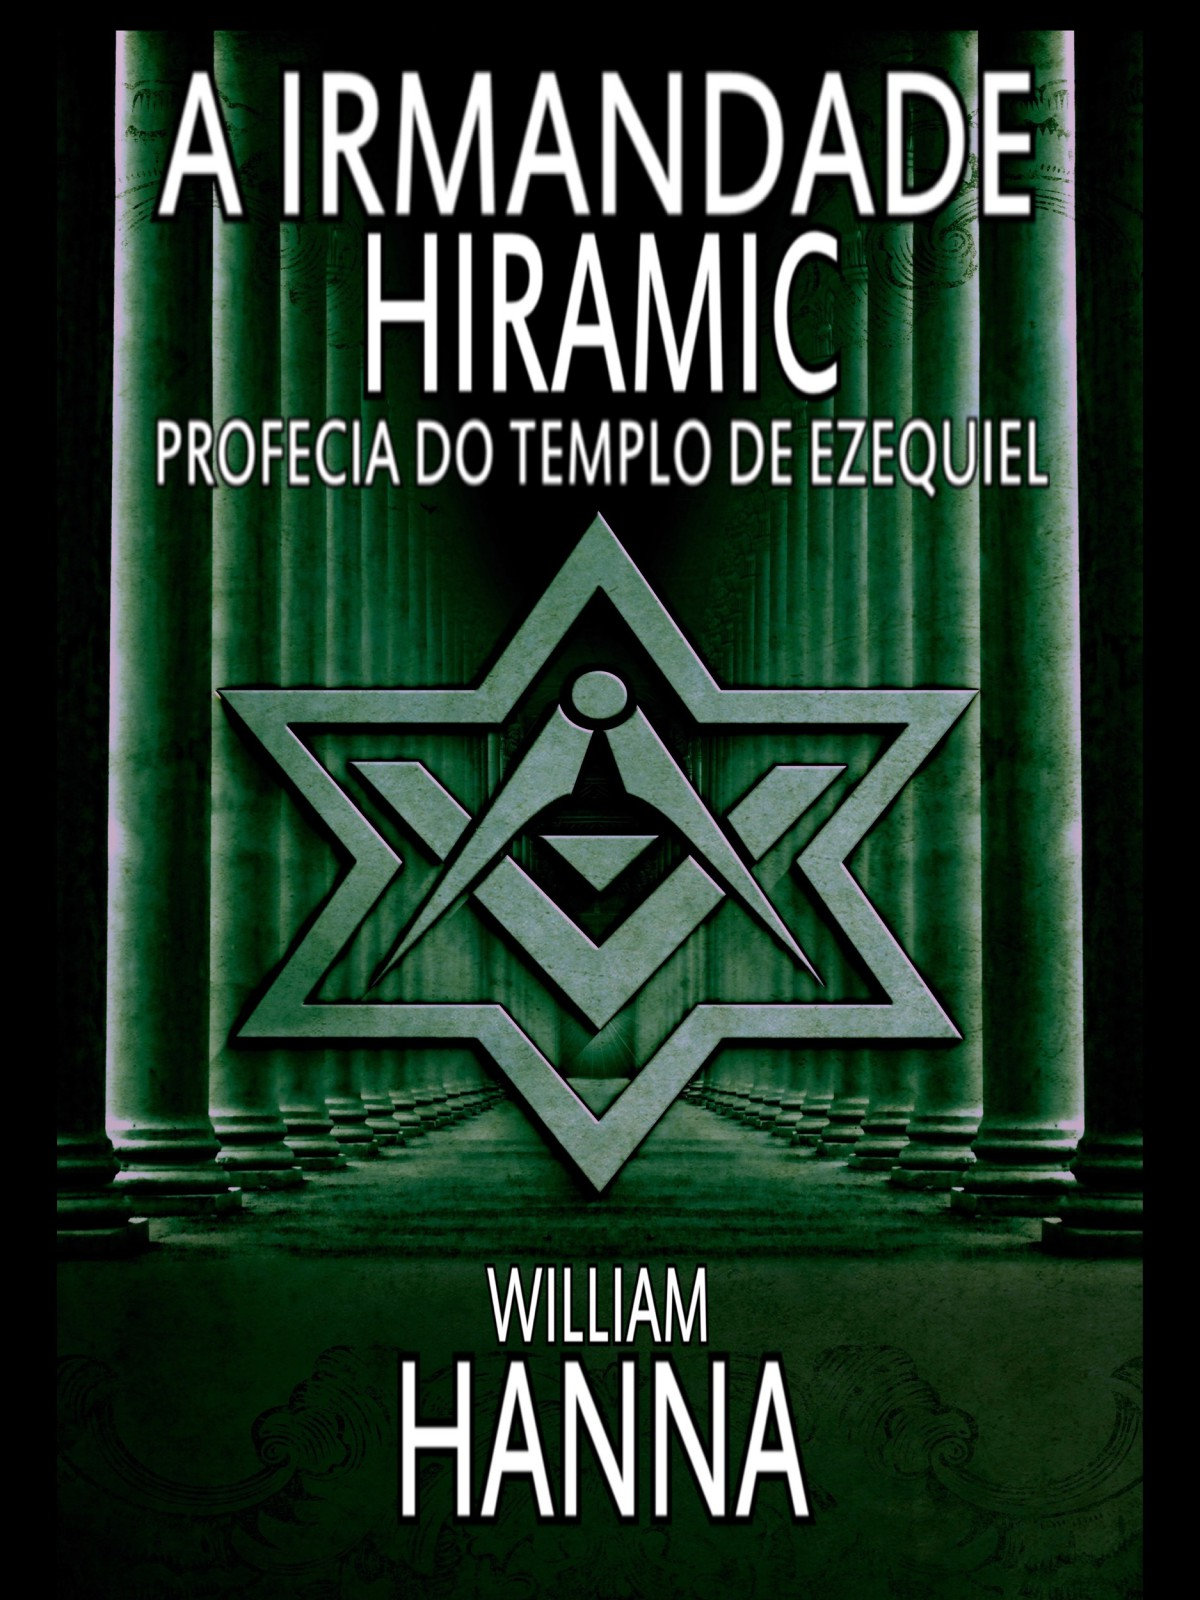 William Hanna A Irmandade Hiramic: Profecia Do Templo De Ezequiel cellular line fineciph655t